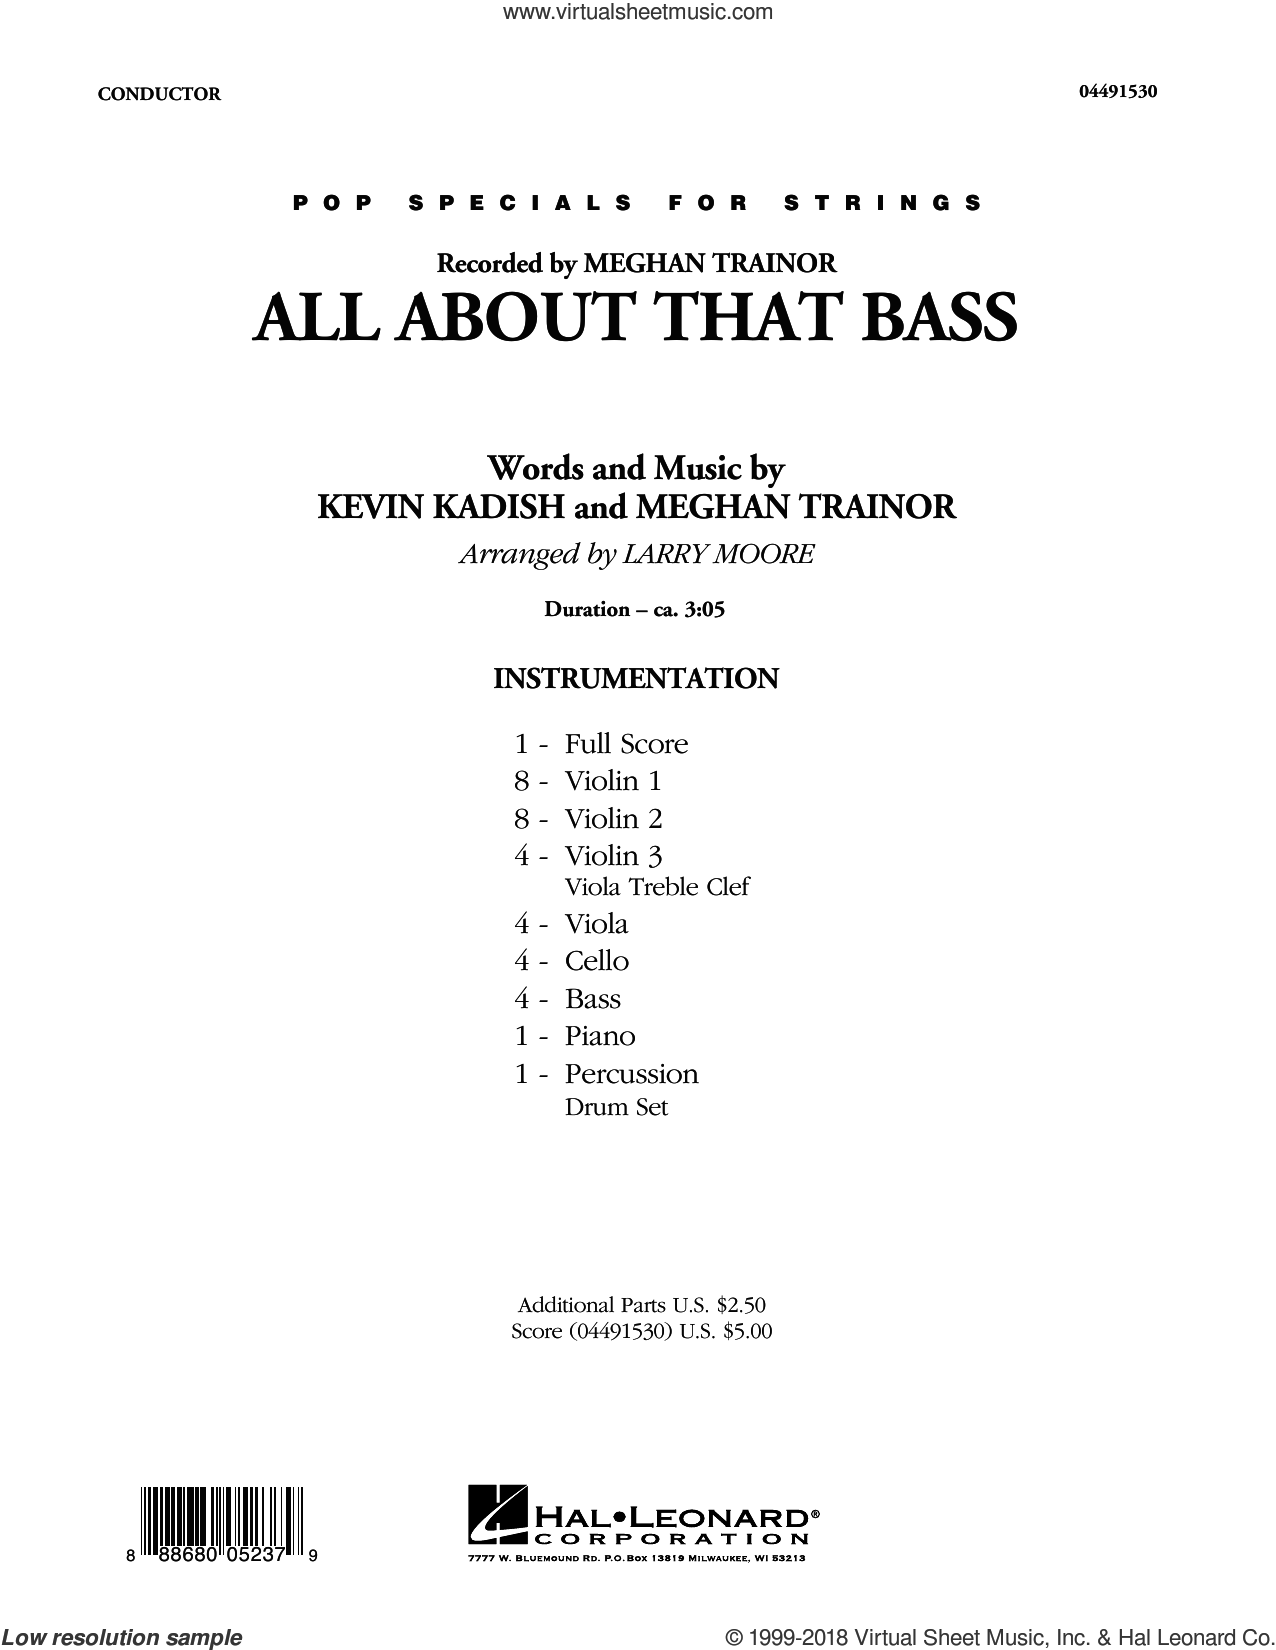 All About That Bass (COMPLETE) sheet music for orchestra by Larry Moore, Kevin Kadish and Meghan Trainor, intermediate. Score Image Preview.